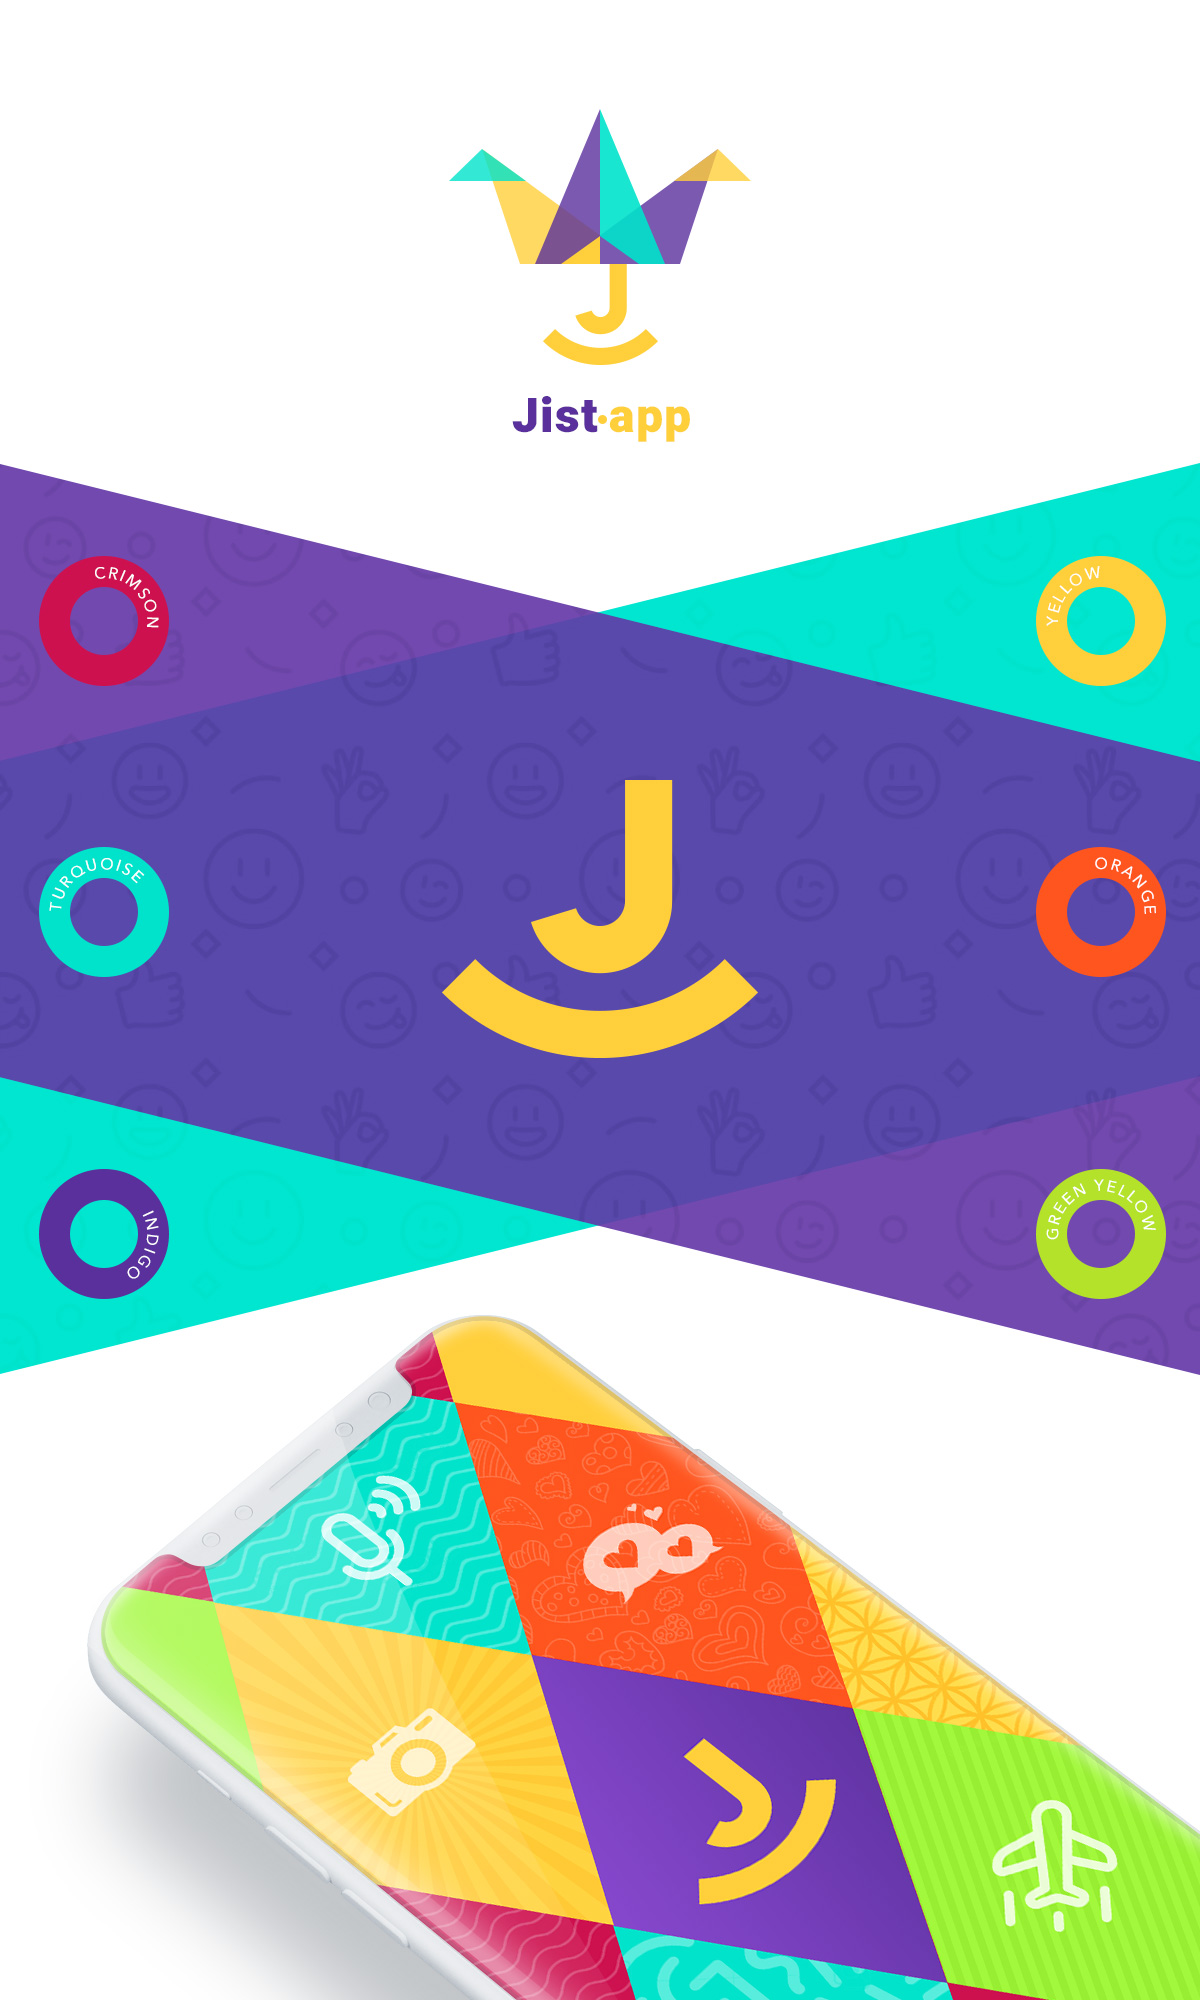 Jist.app Logo Preview 1